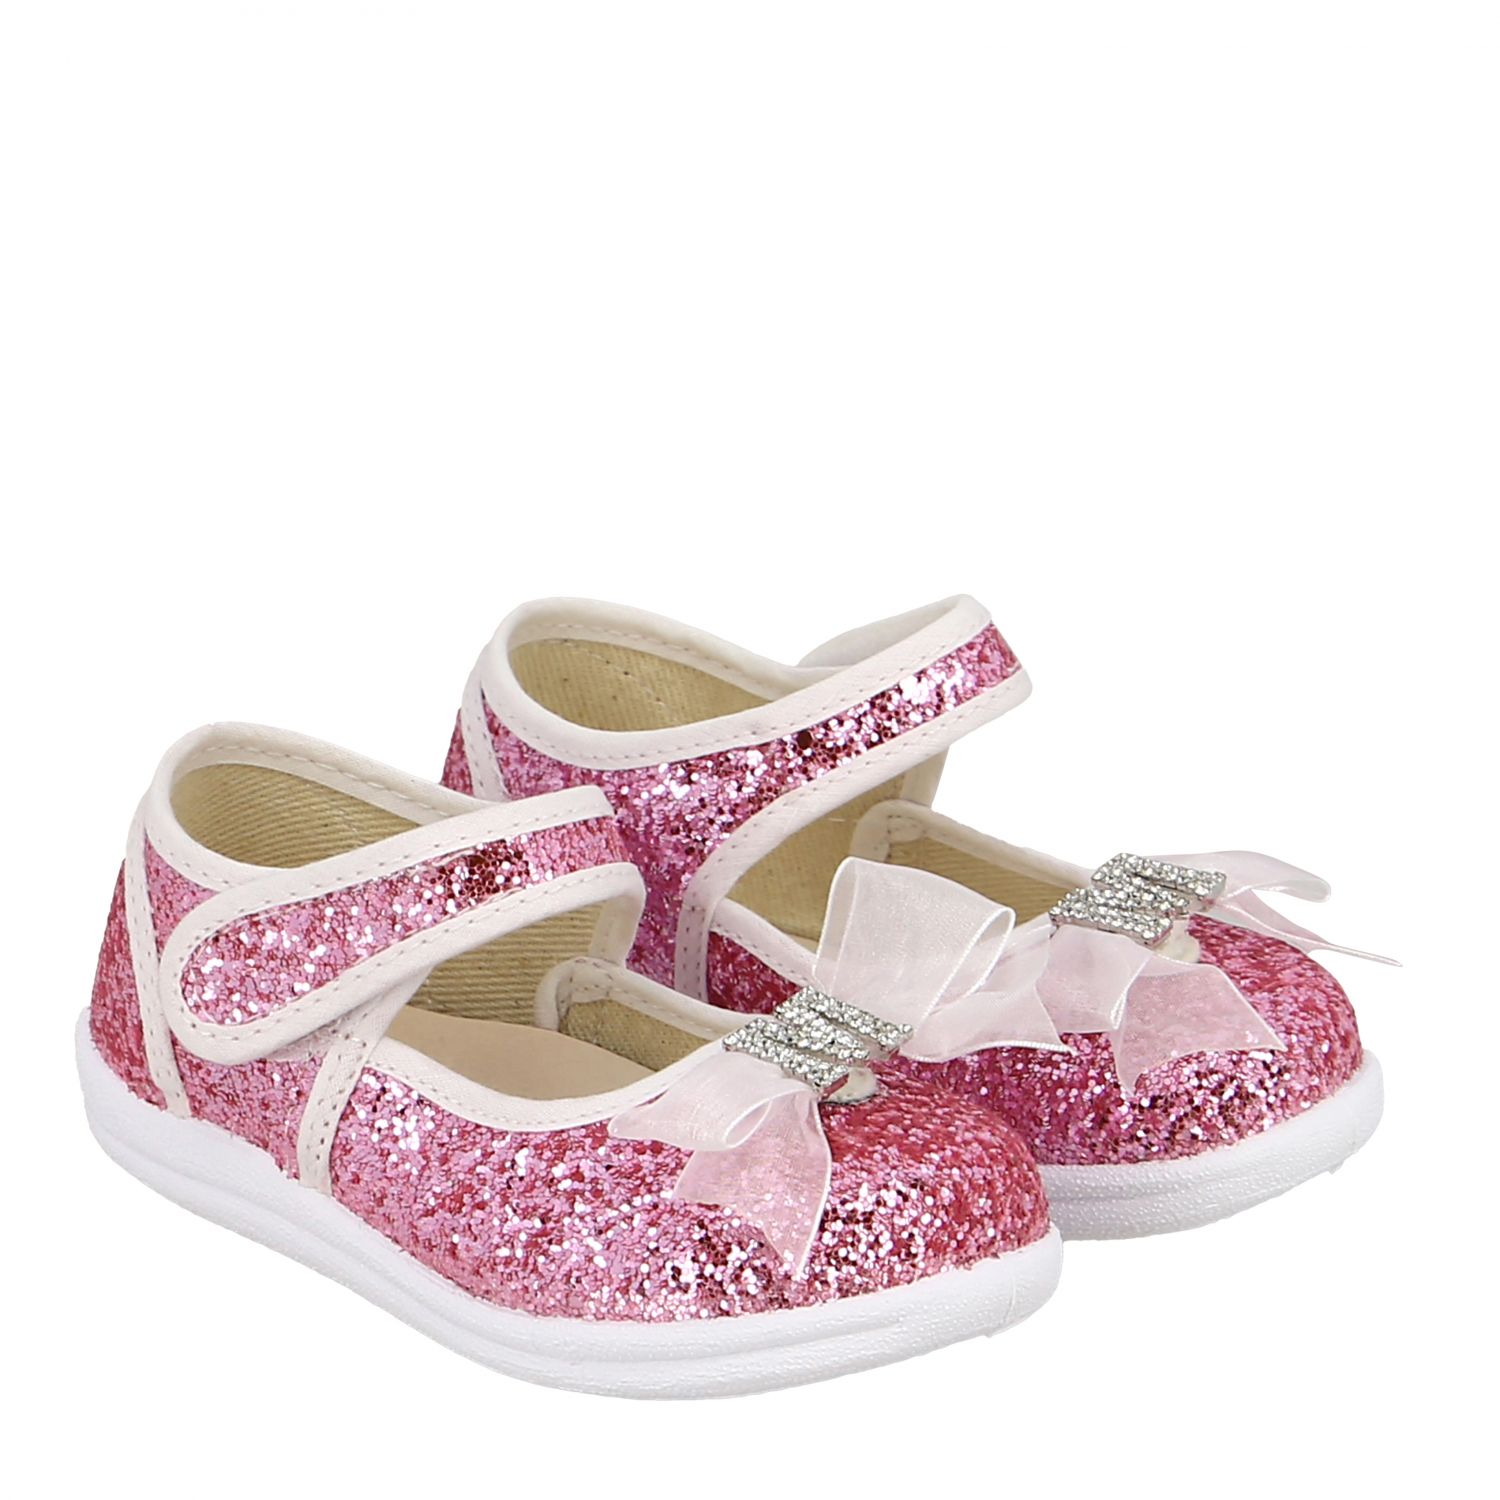 Monnalisa ballet flats in glitter fabric with bow and rhinestones pink 2